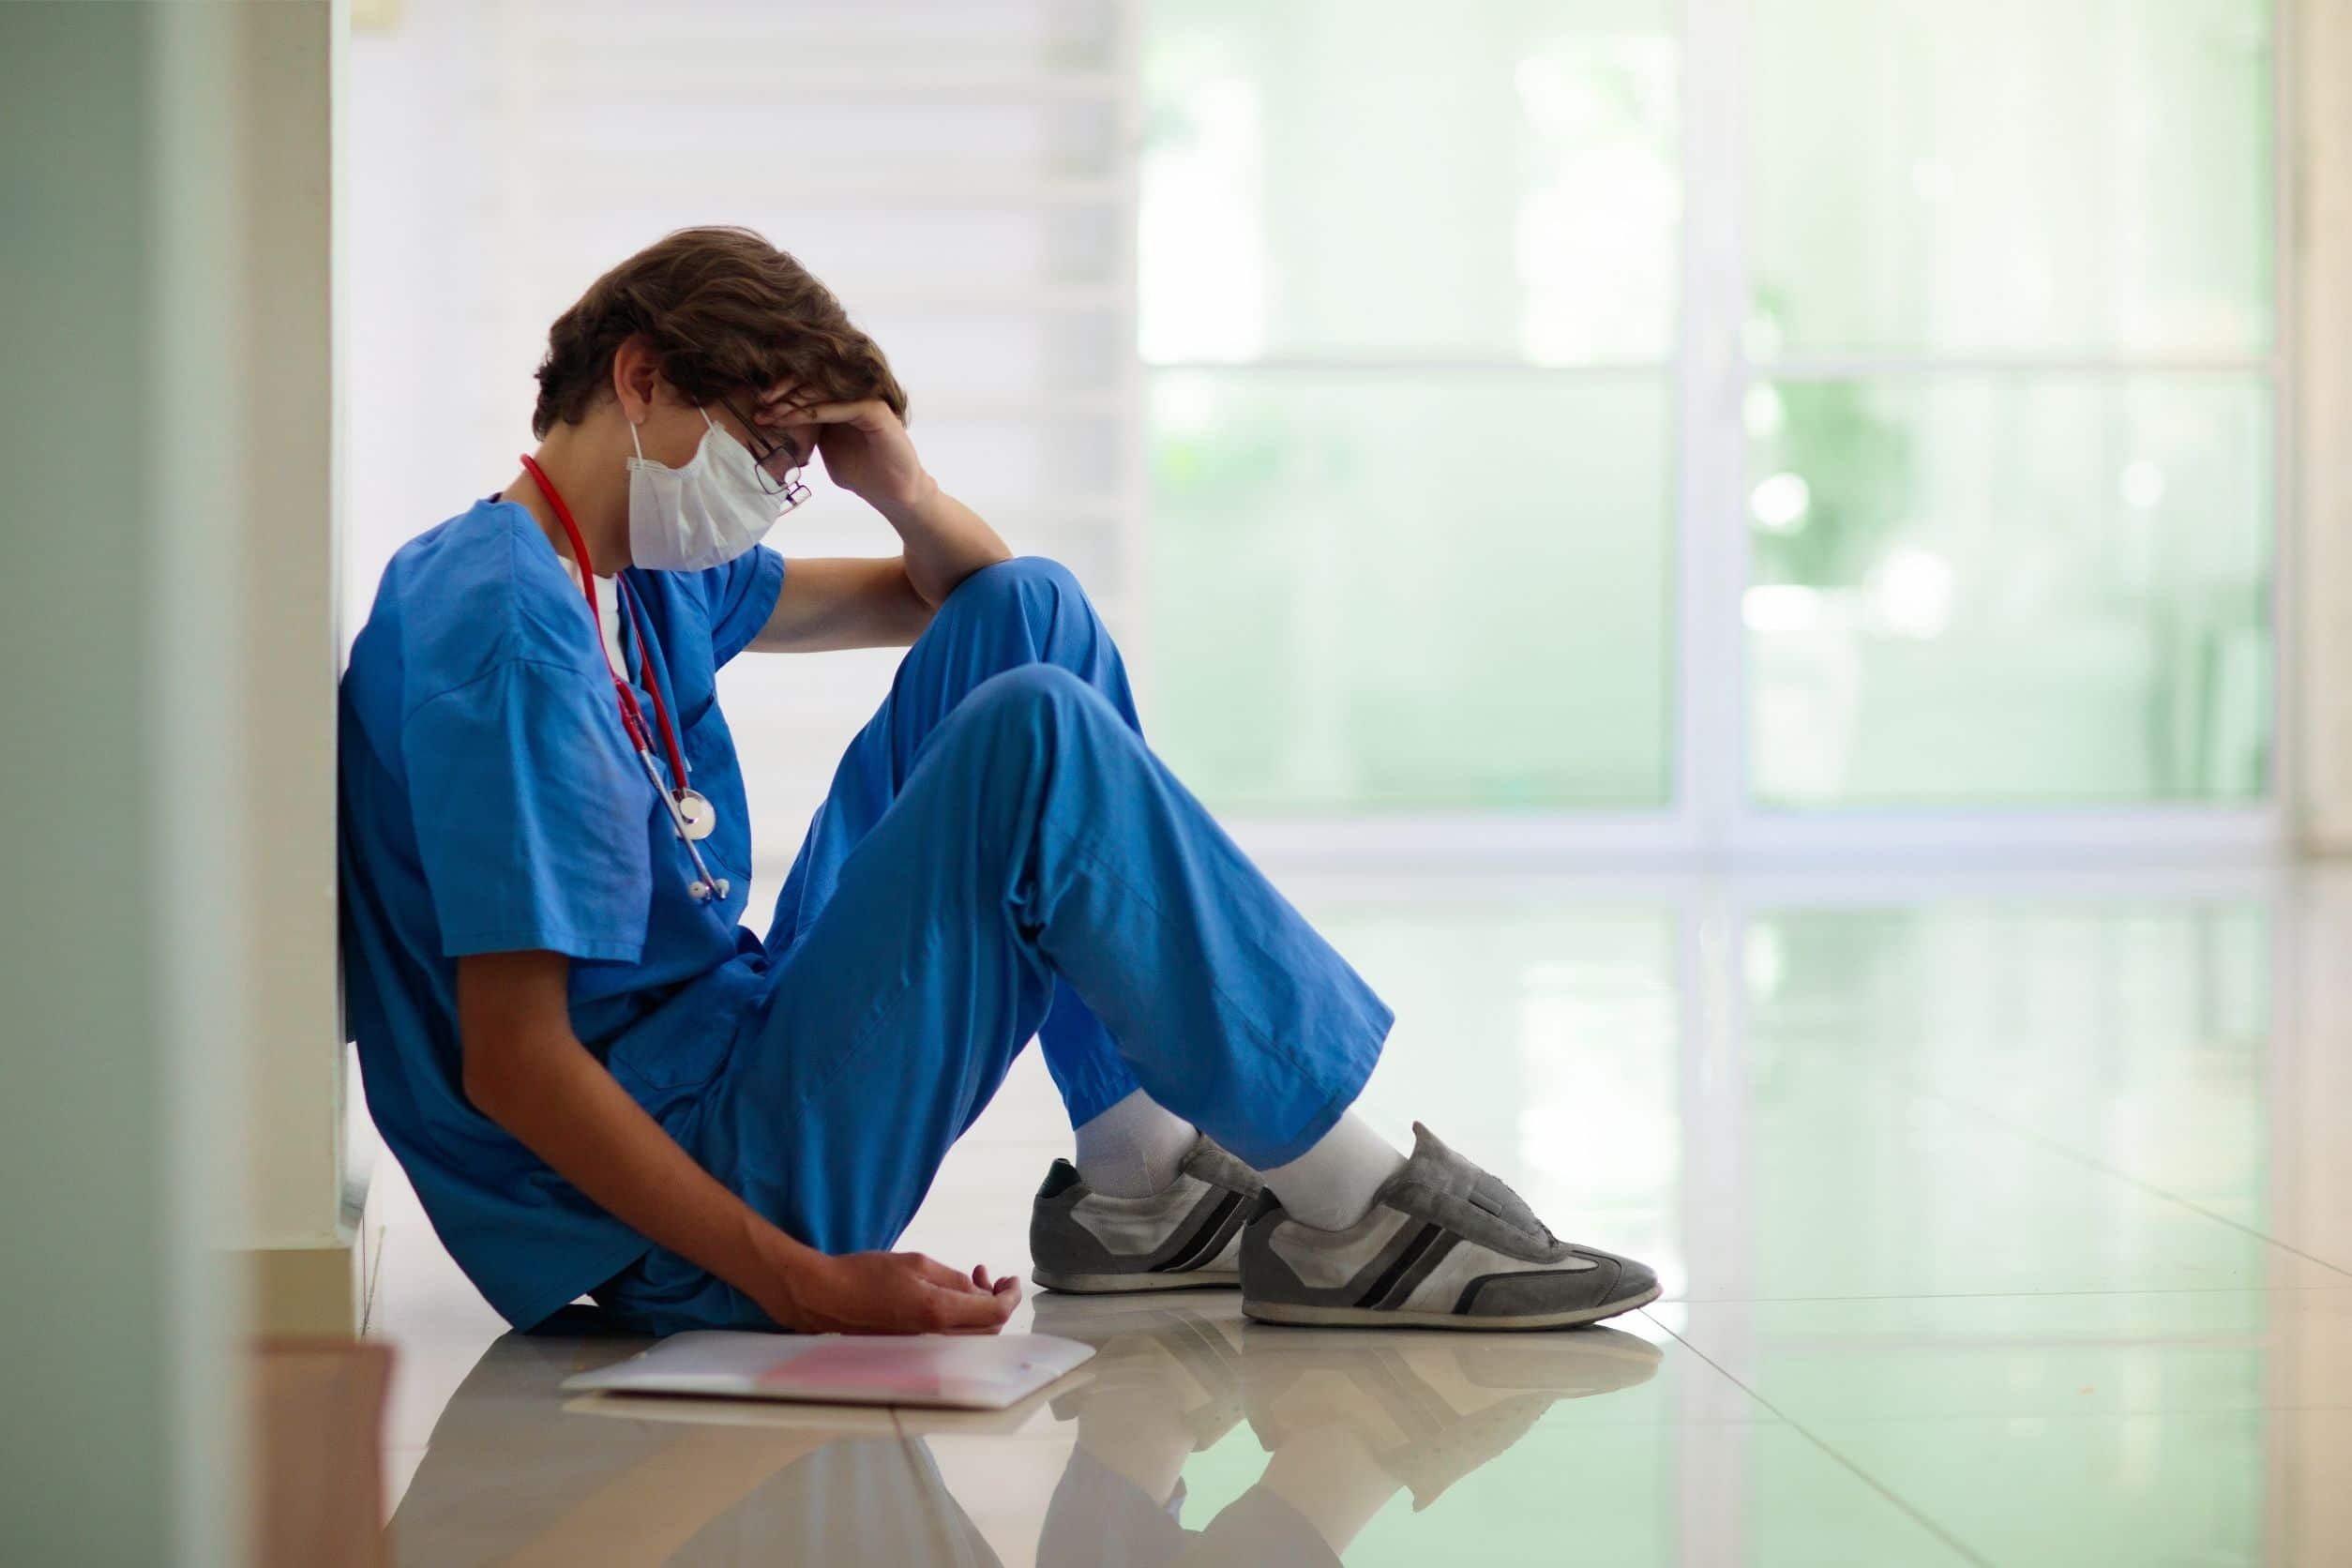 healthcare worker experiencing nursing burnout and feeling tired